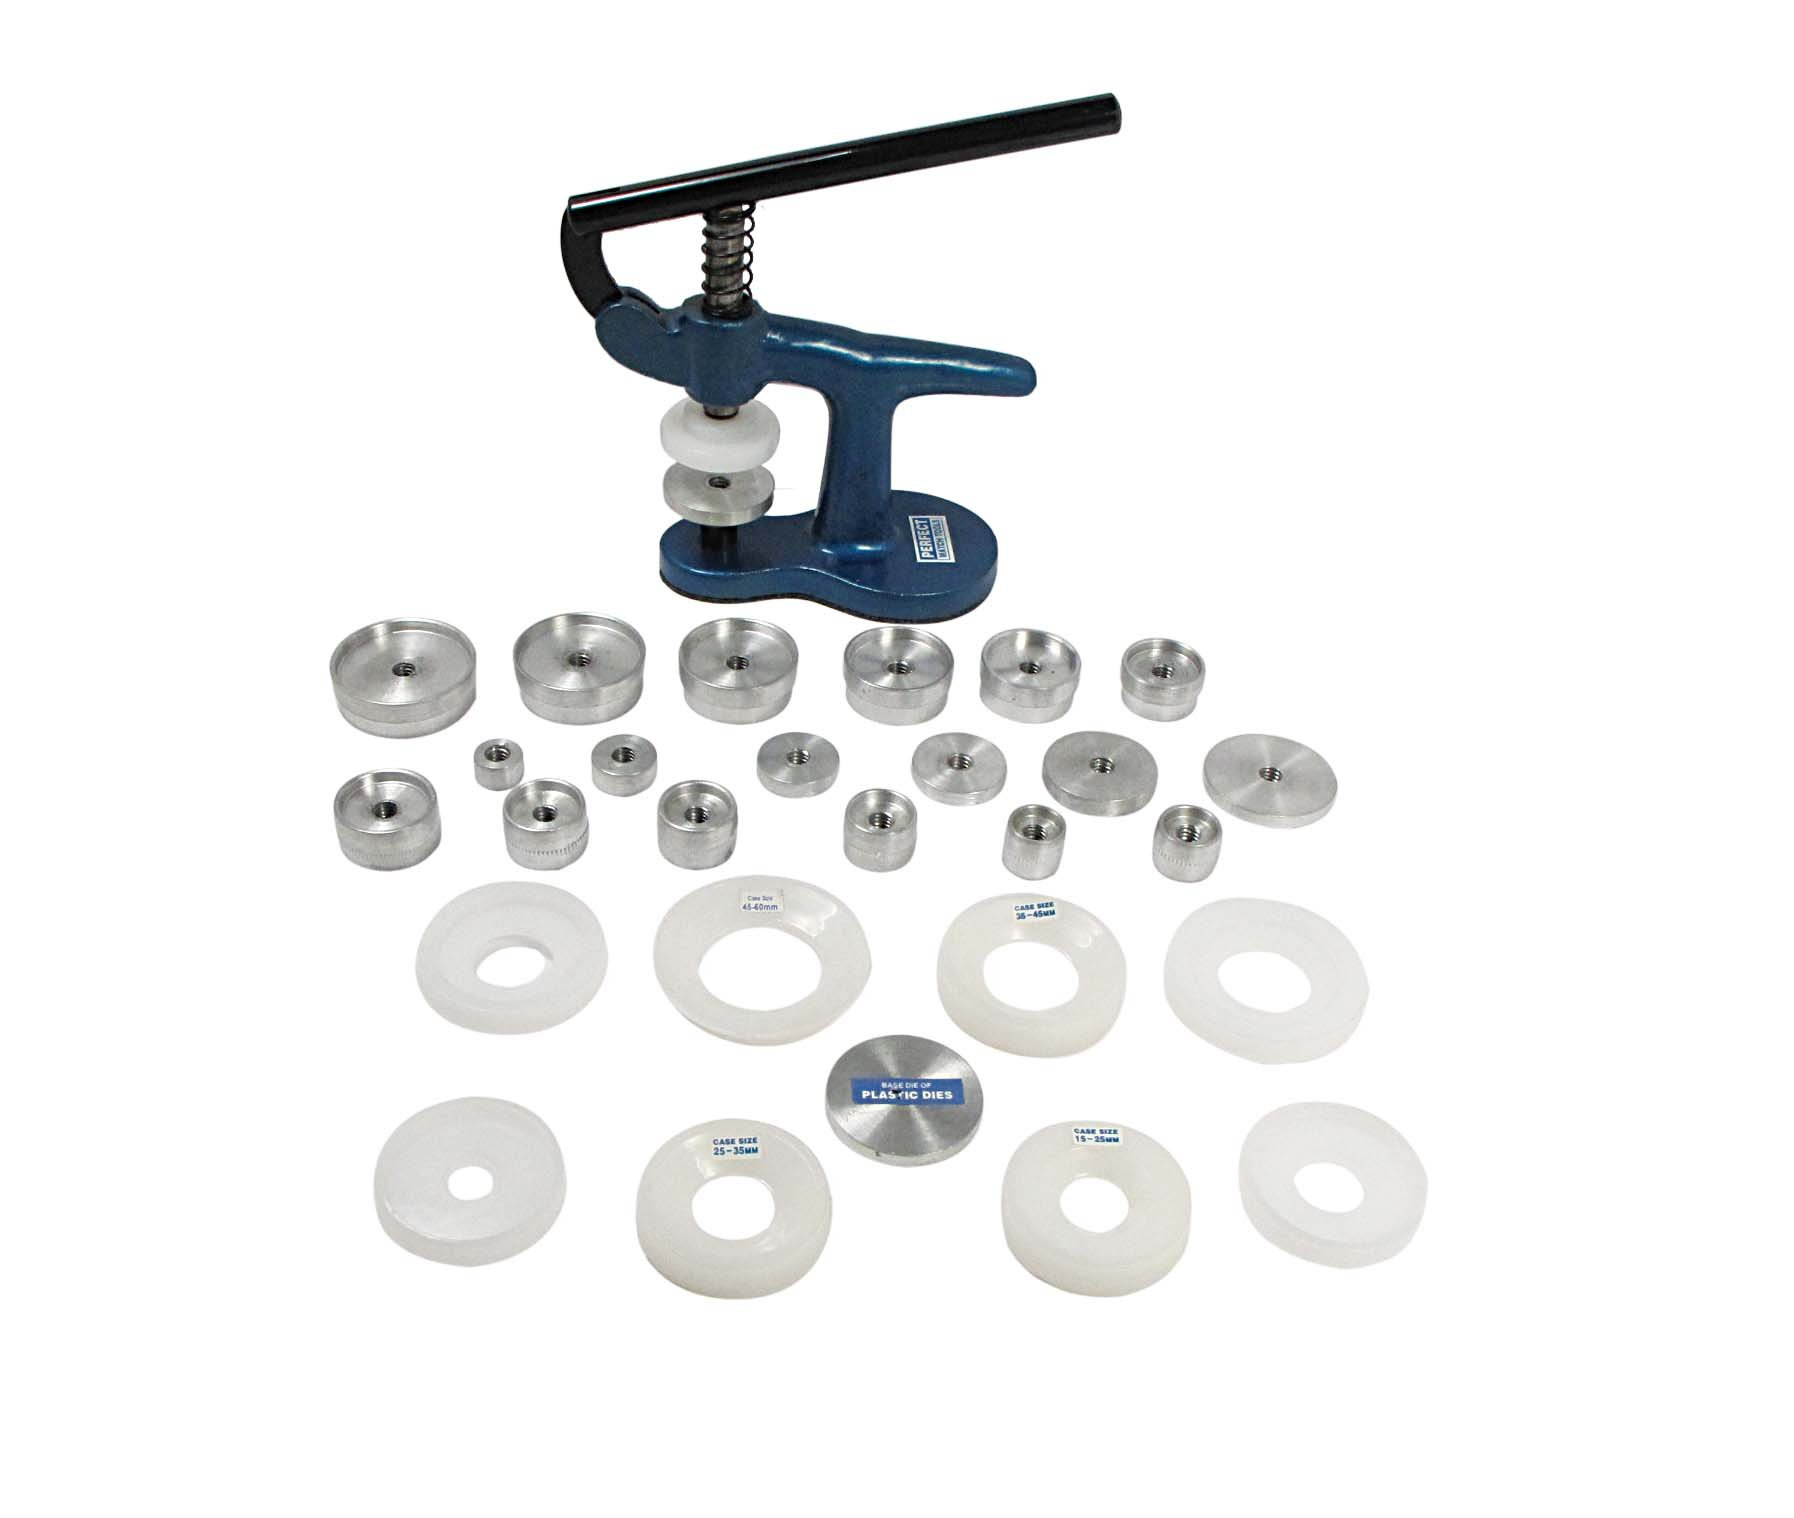 SE JT1228 Watch Glass and Back Fitting Press with 28 Dies